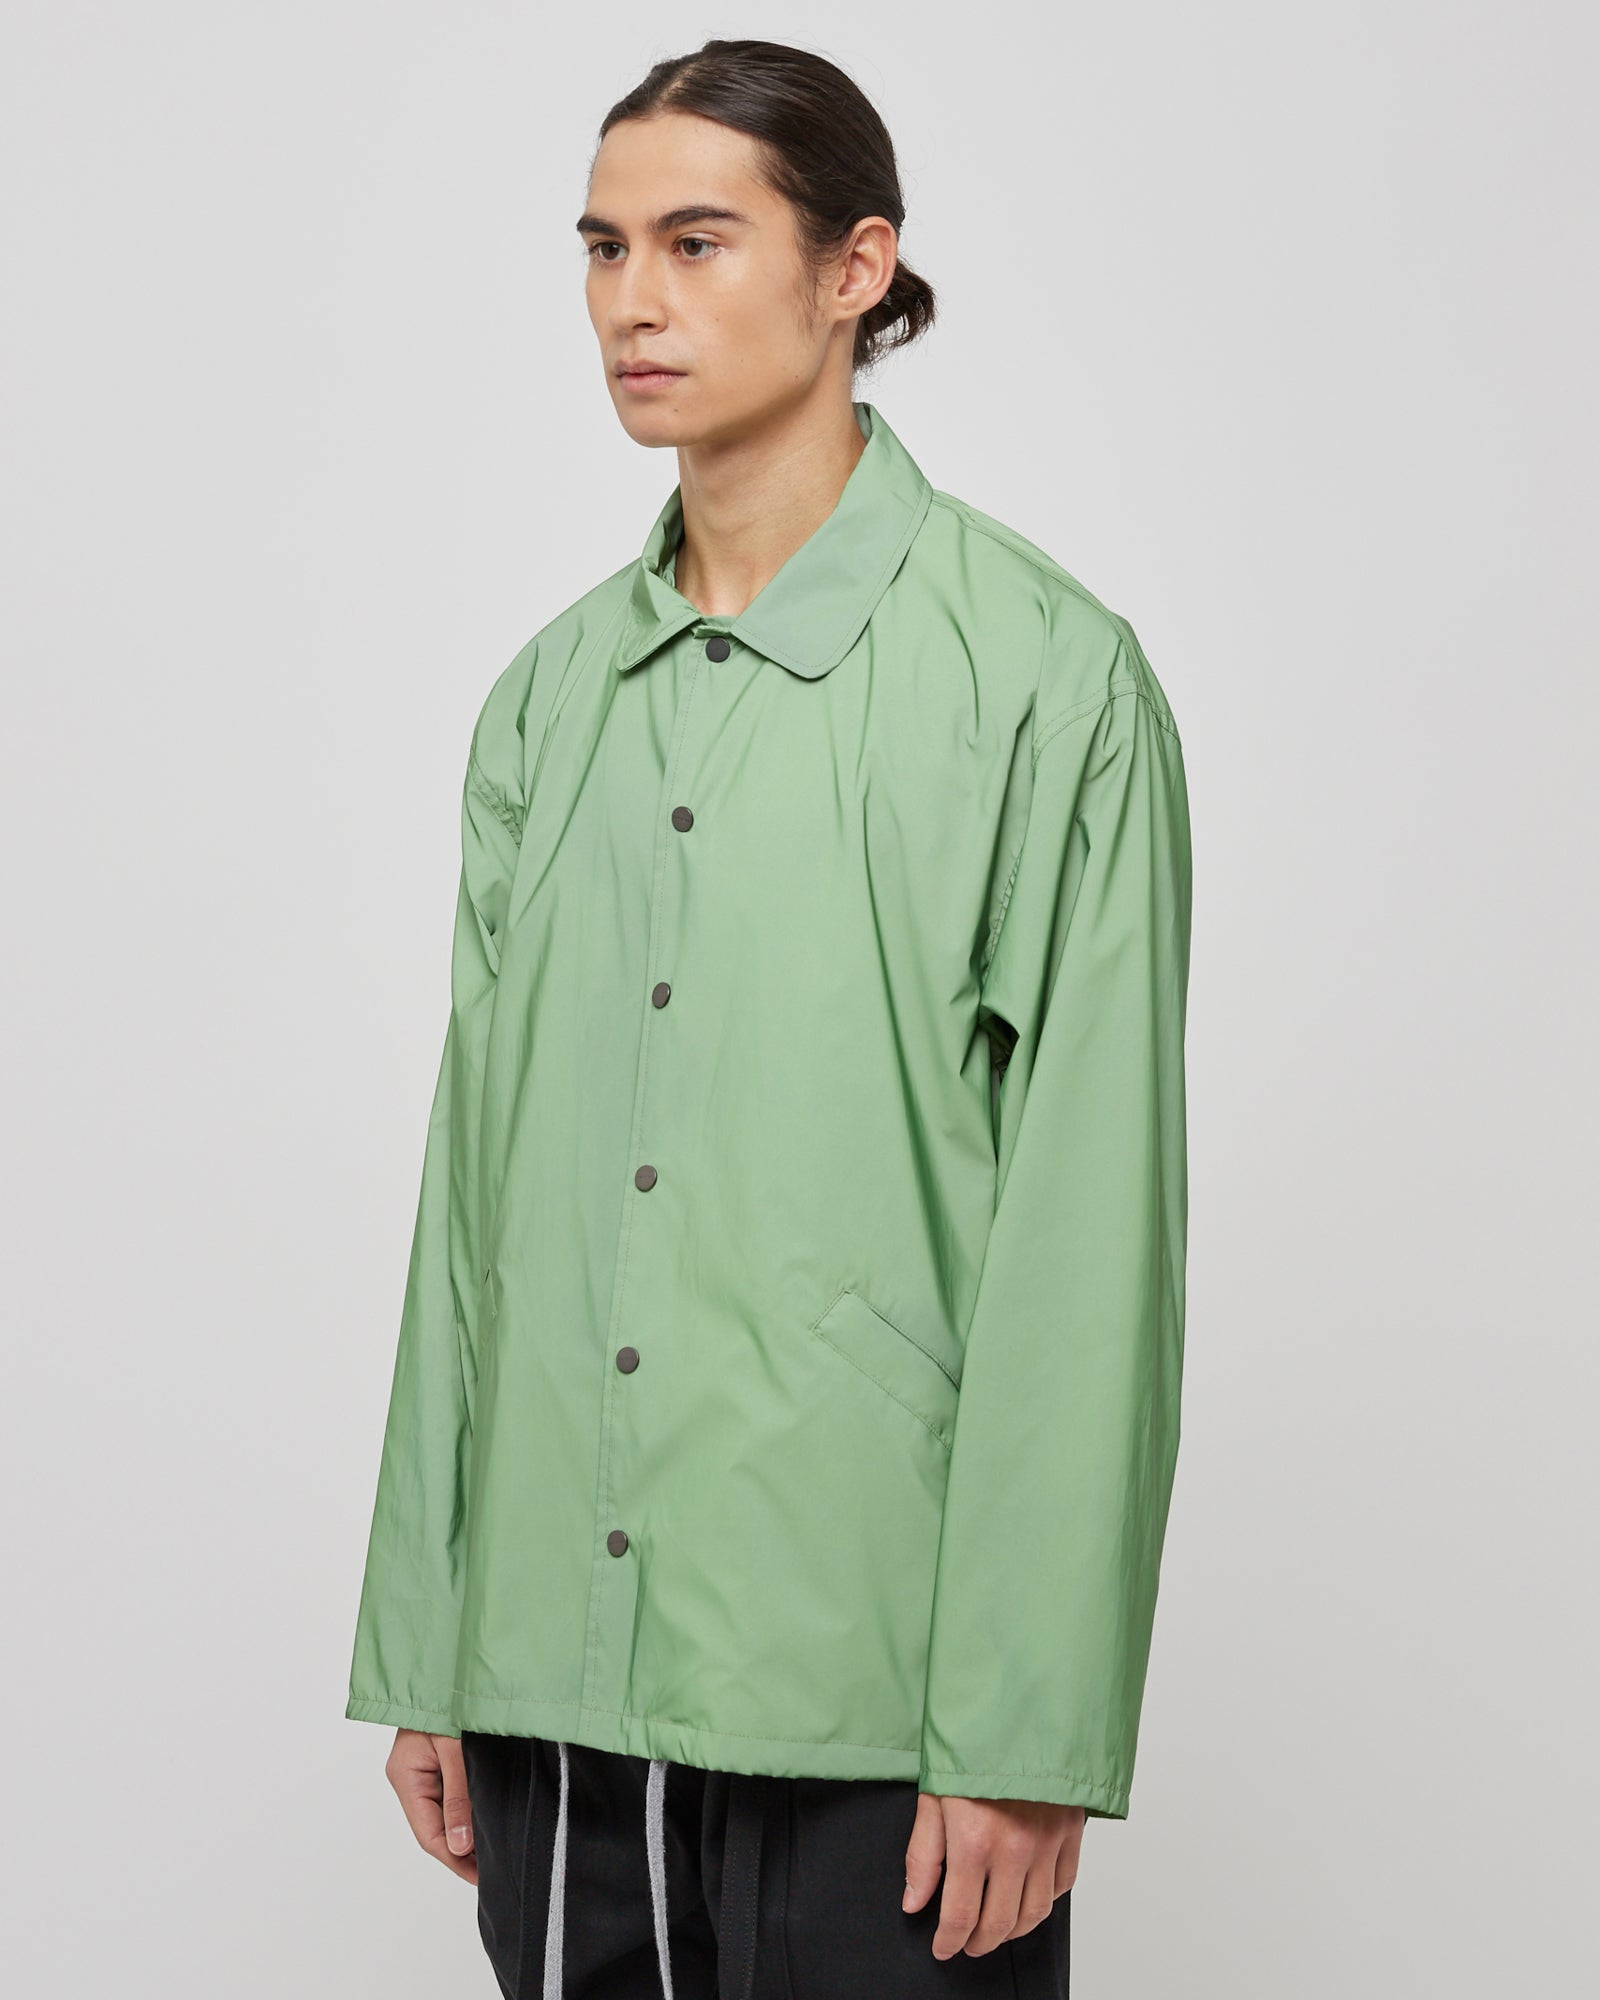 Coaches Jacket in Army Iridescent Green